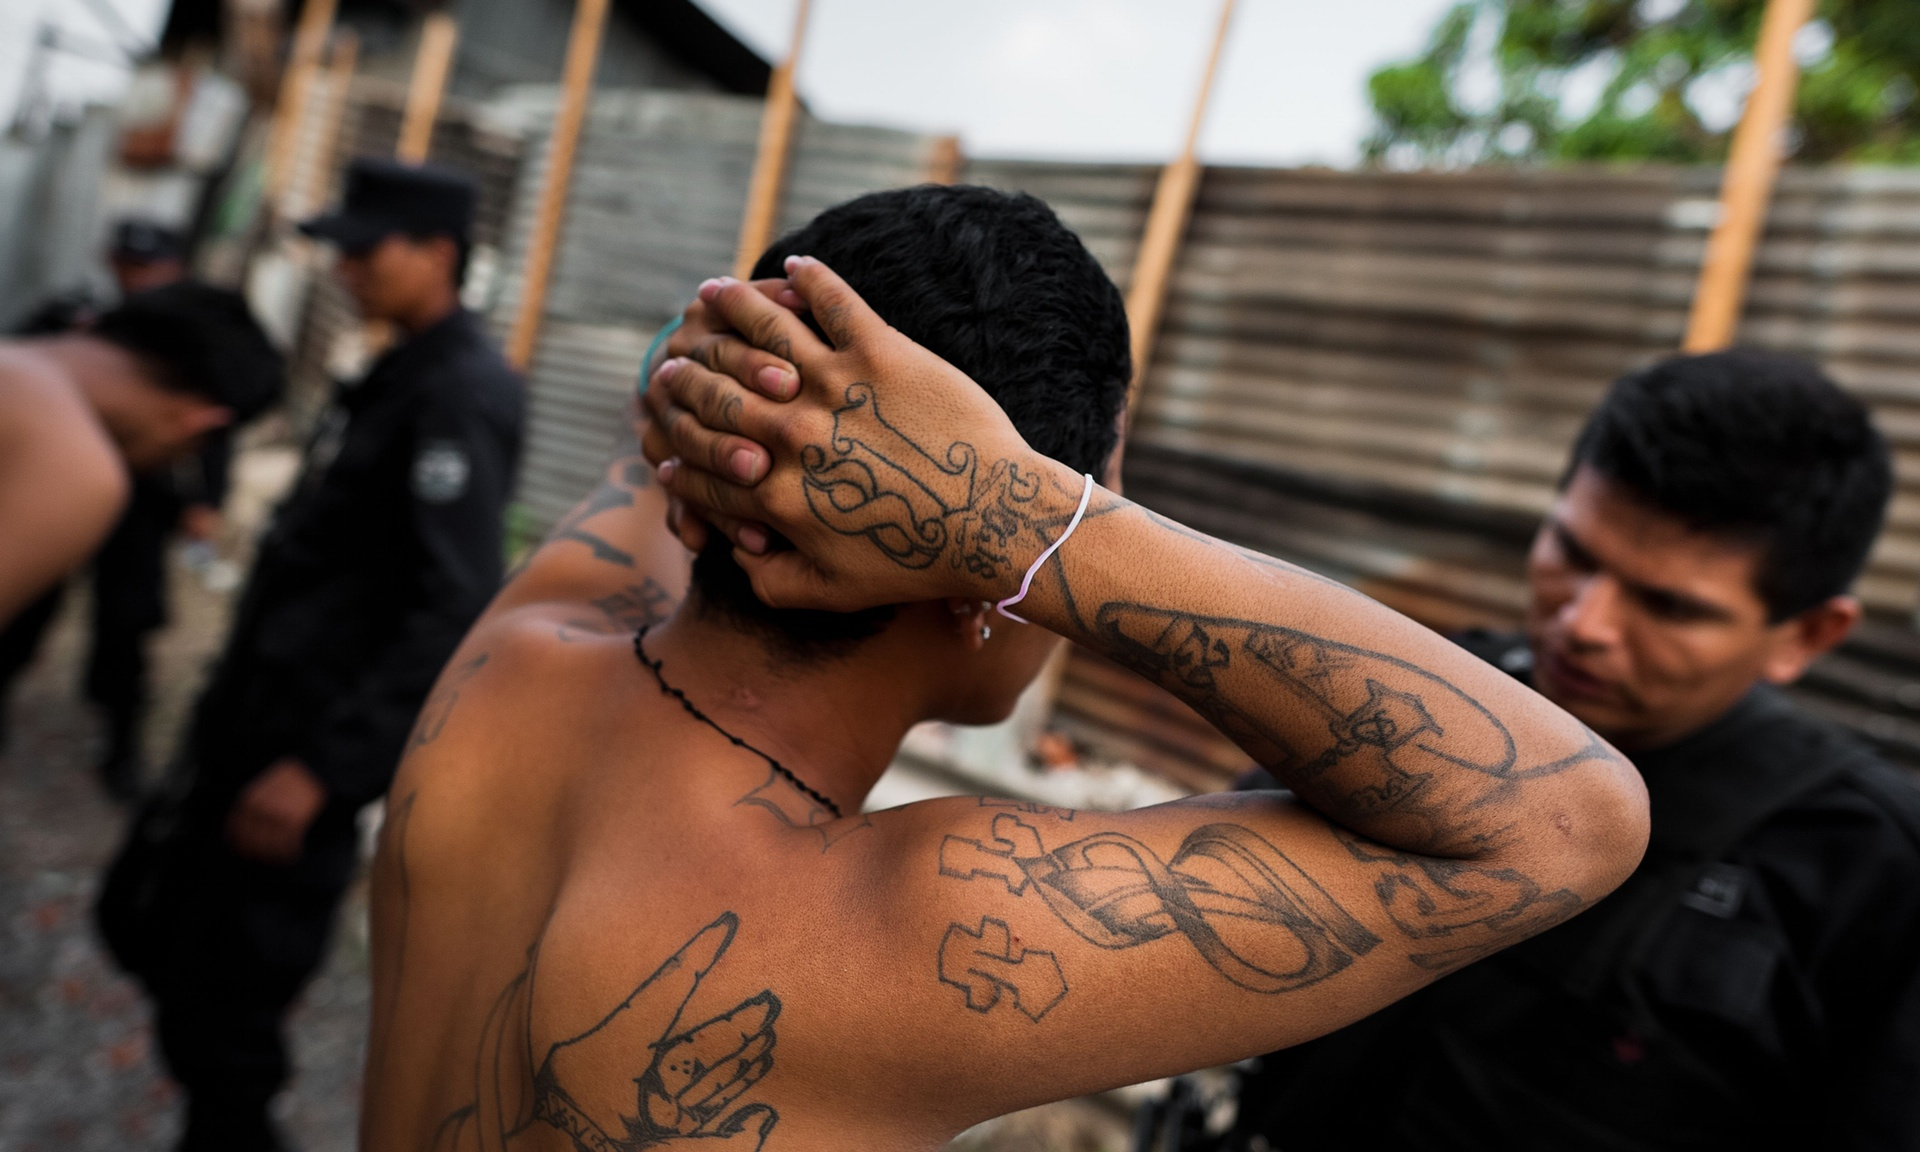 an examination of gangs and their crimes Chicago police attributed 75 percent of homicides in the city in 2015 and 2016 to altercations — most involving street gangs, according to the university of chicago crime lab draft report.